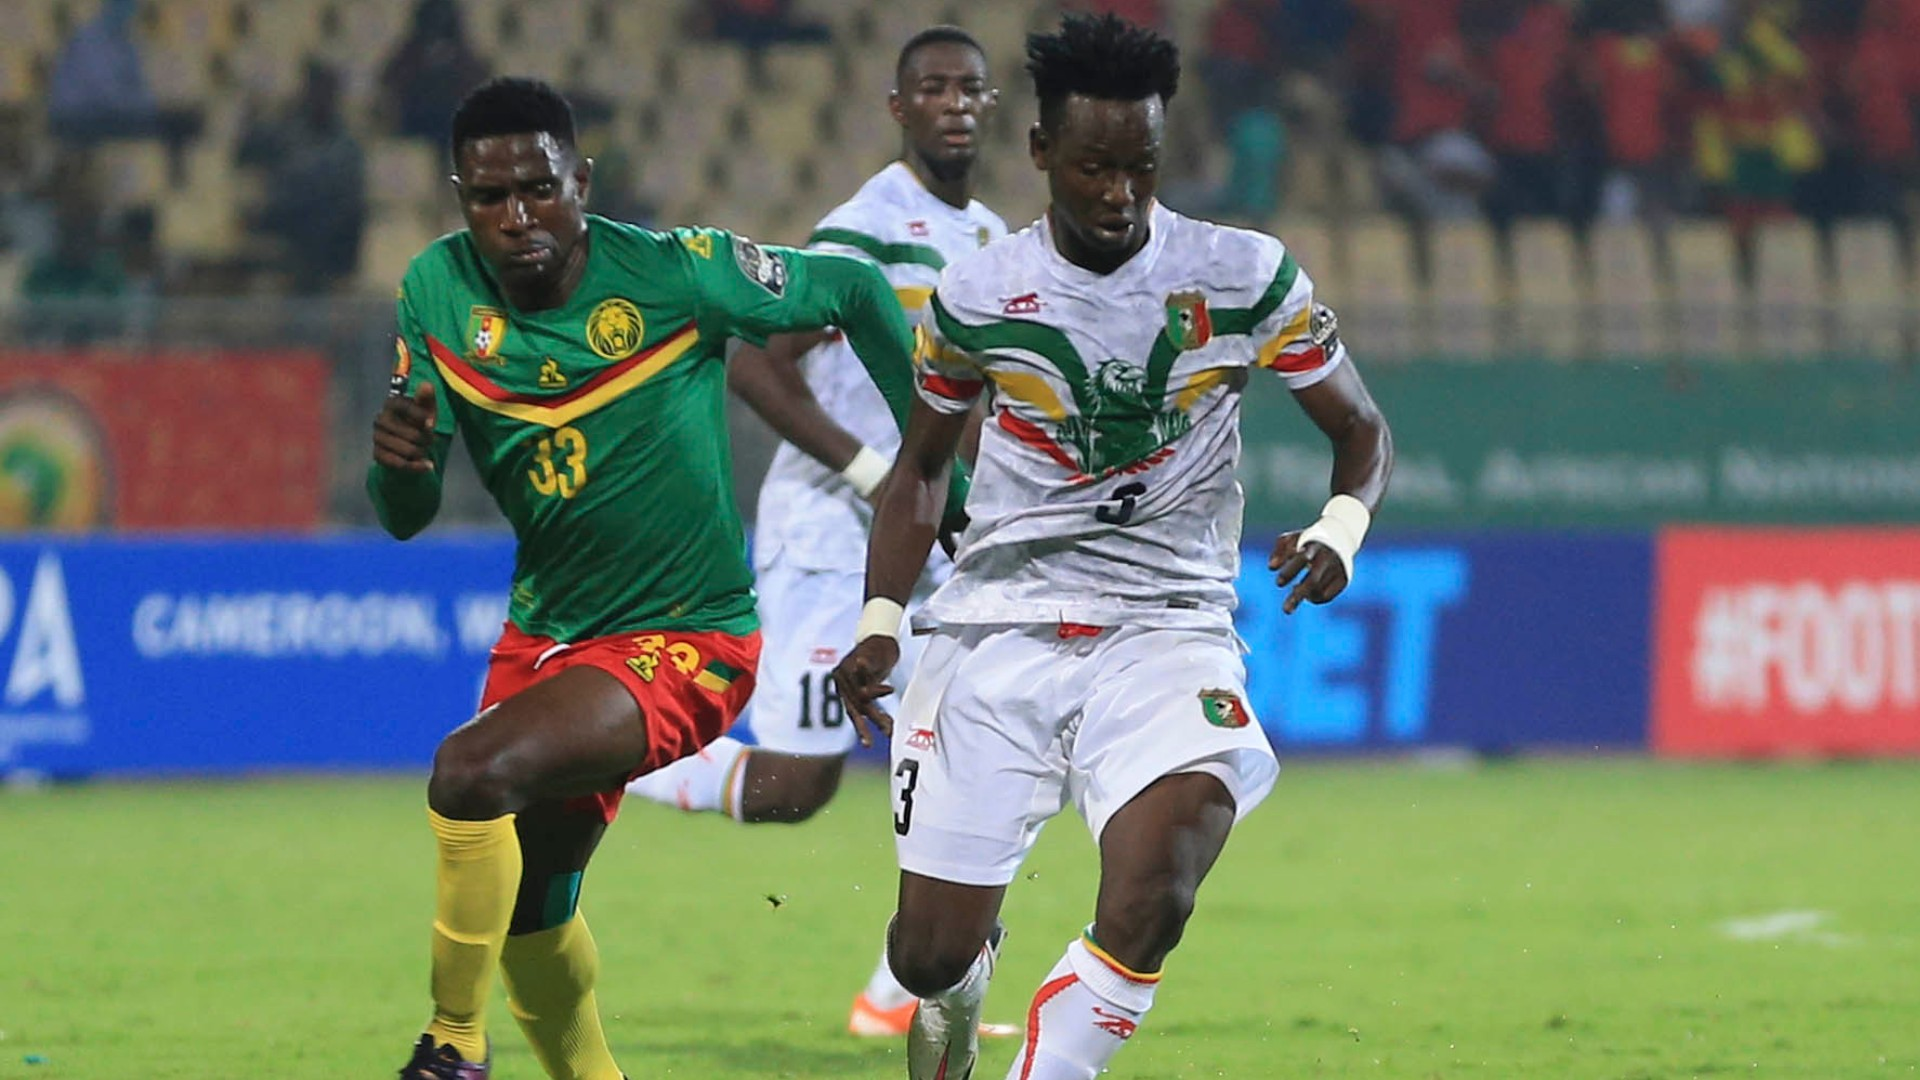 2021 Chan Wrap: Cameroon and Mali share spoils, Zimbabwe sent home